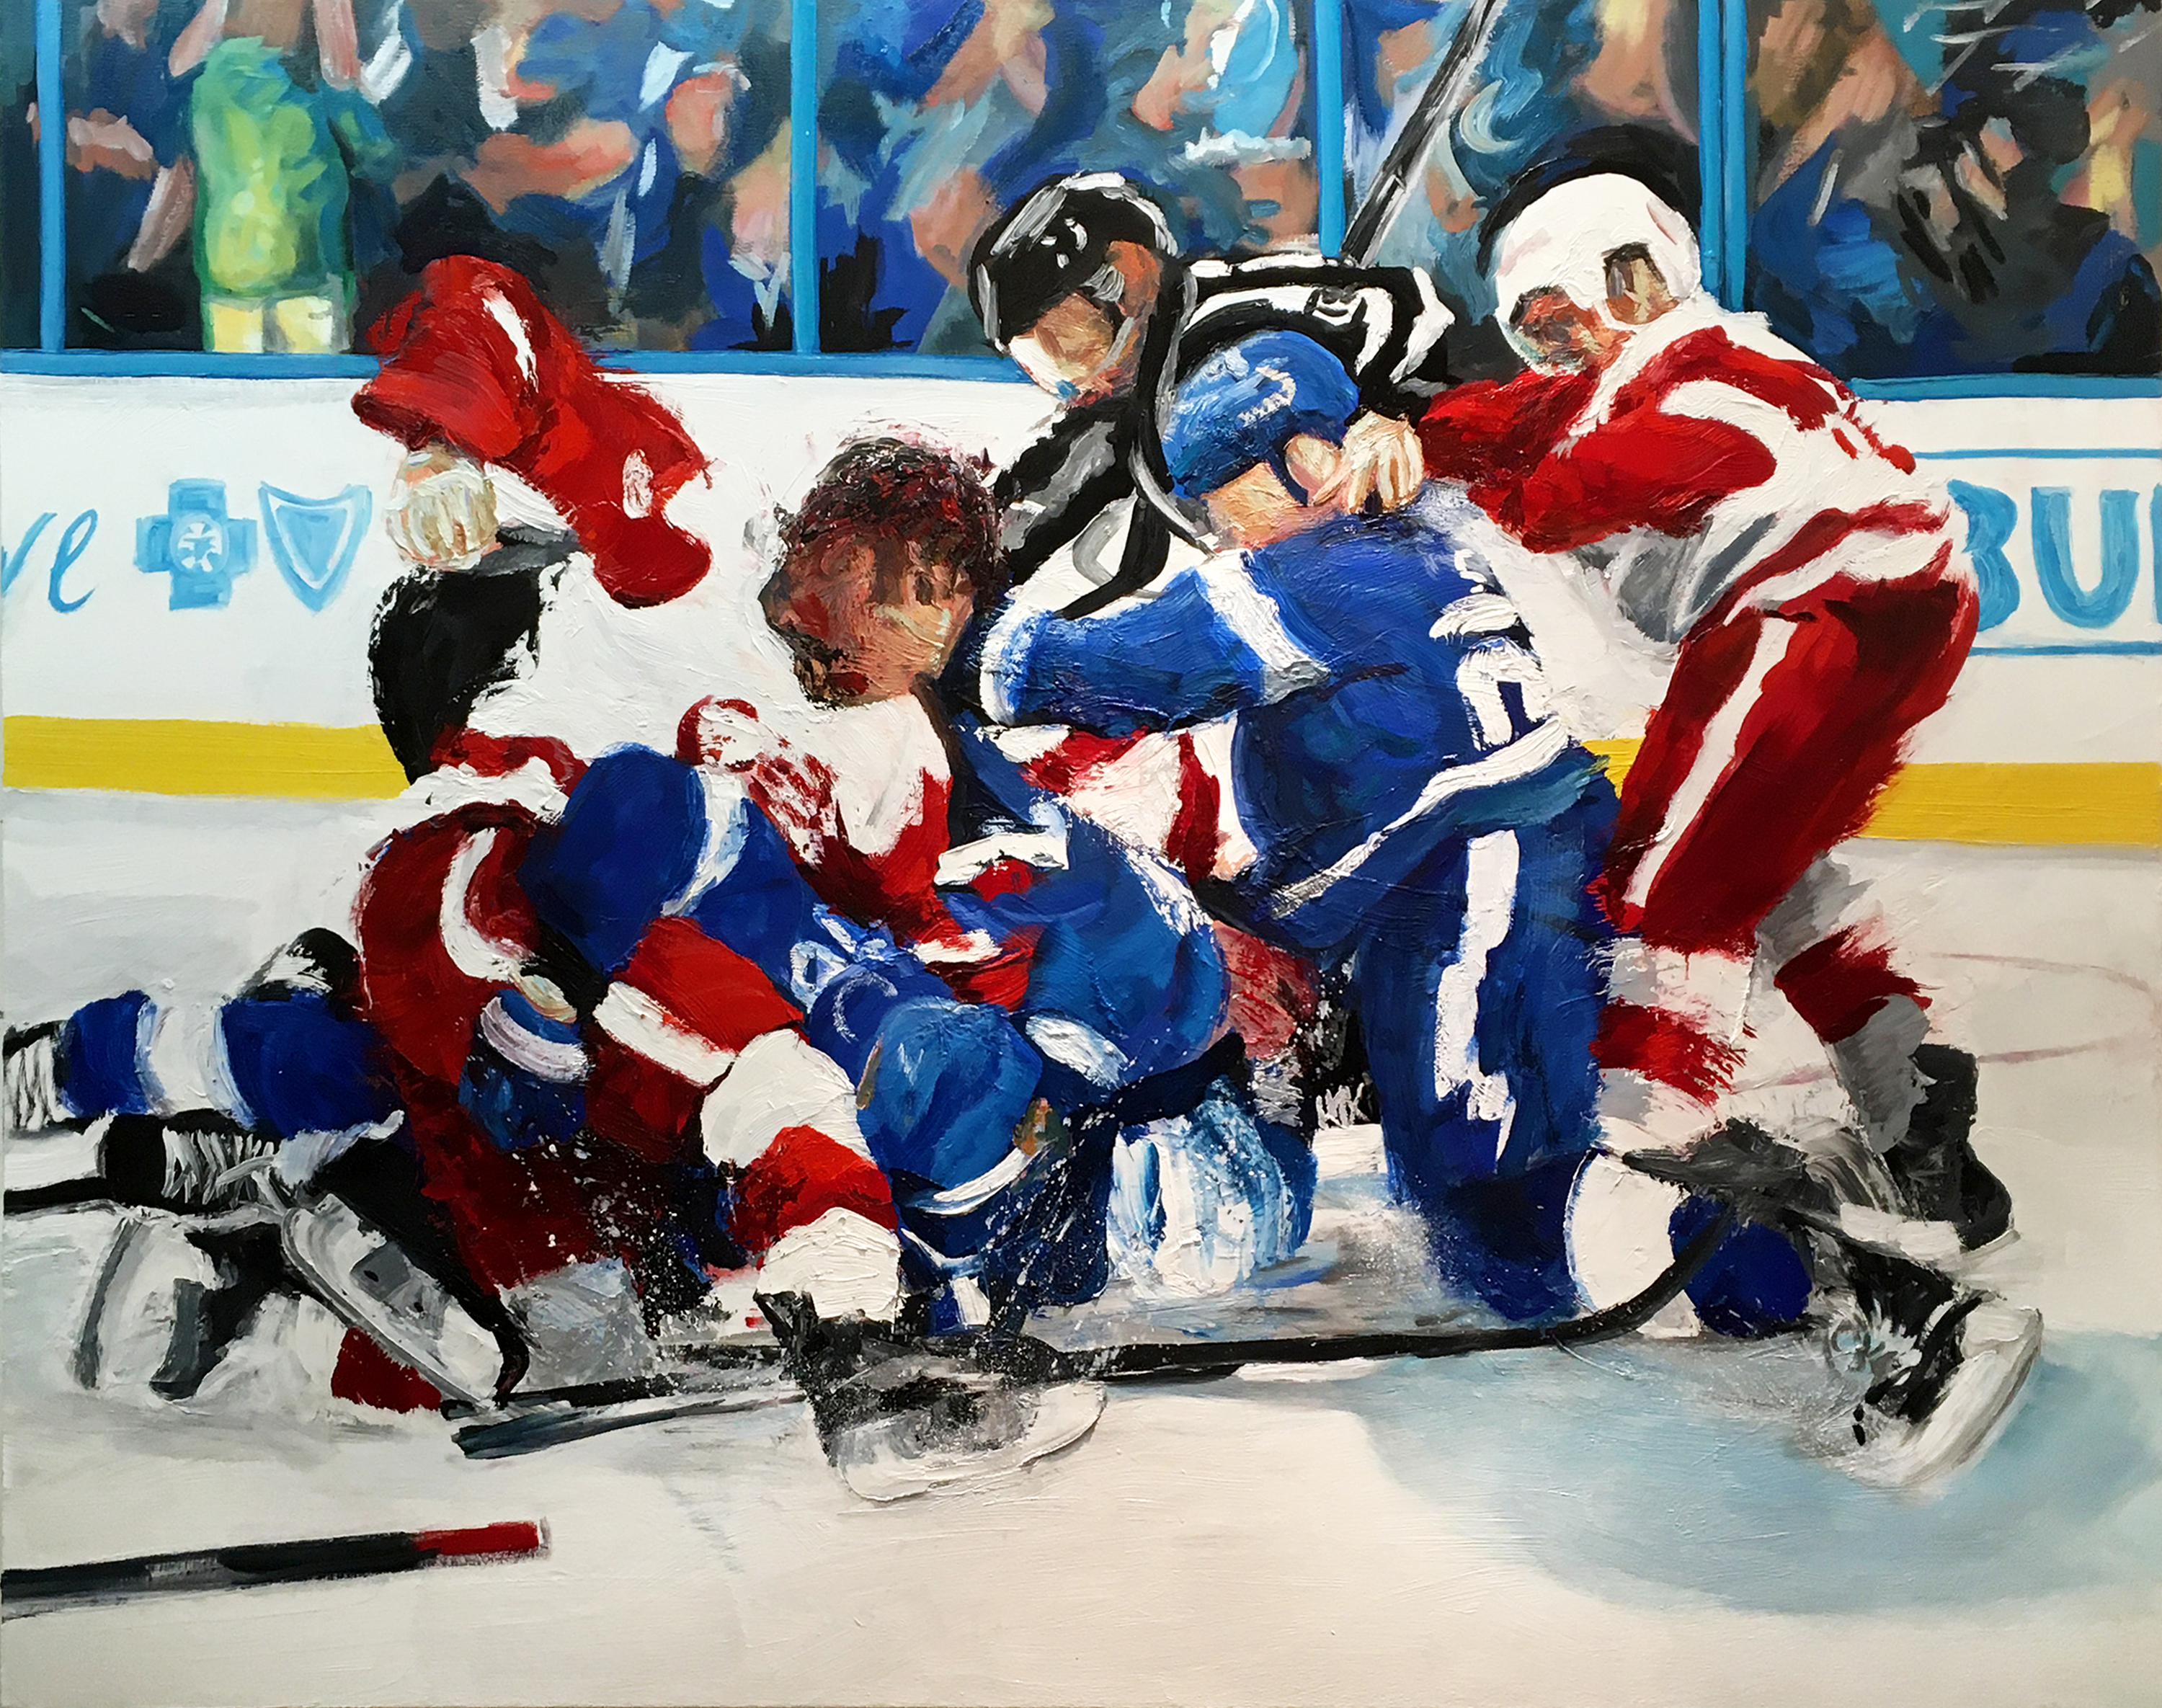 Wingsbolts painting michael serafino wetpaintnyc gallery v7nnu1